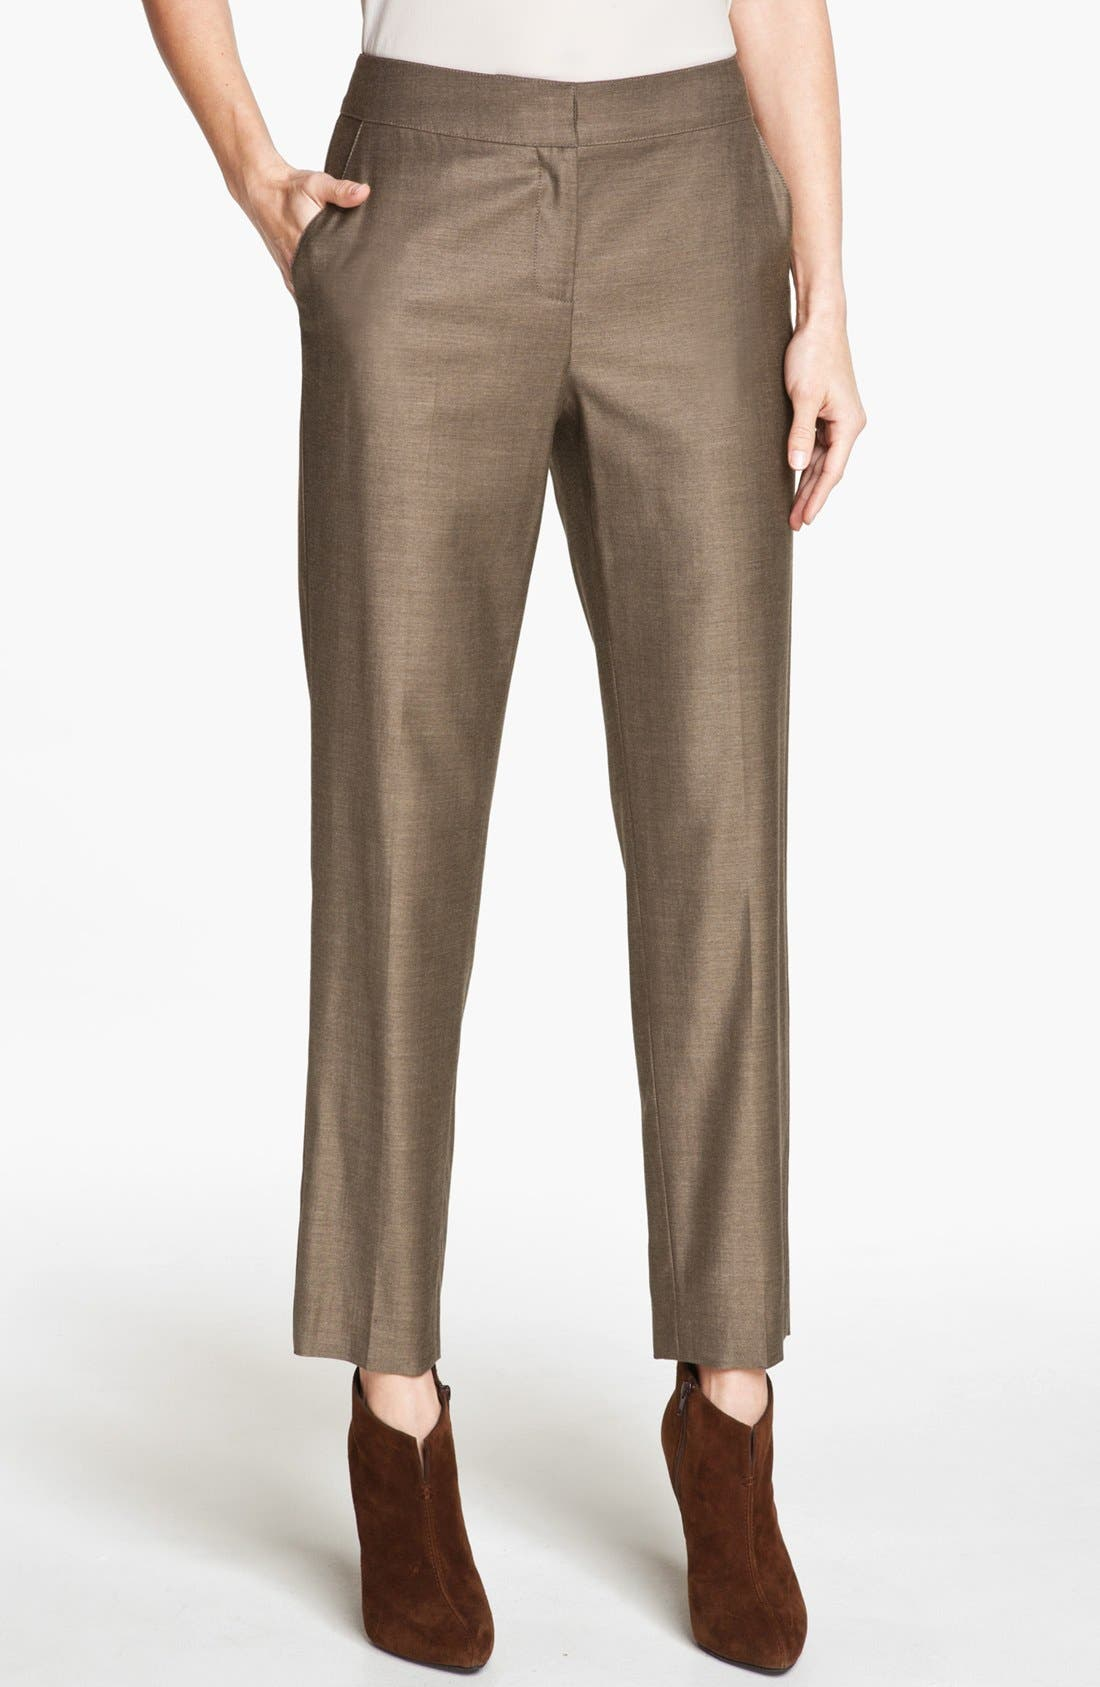 Alternate Image 1 Selected - St. John Collection 'Emma' Shimmer Twill Crop Pants